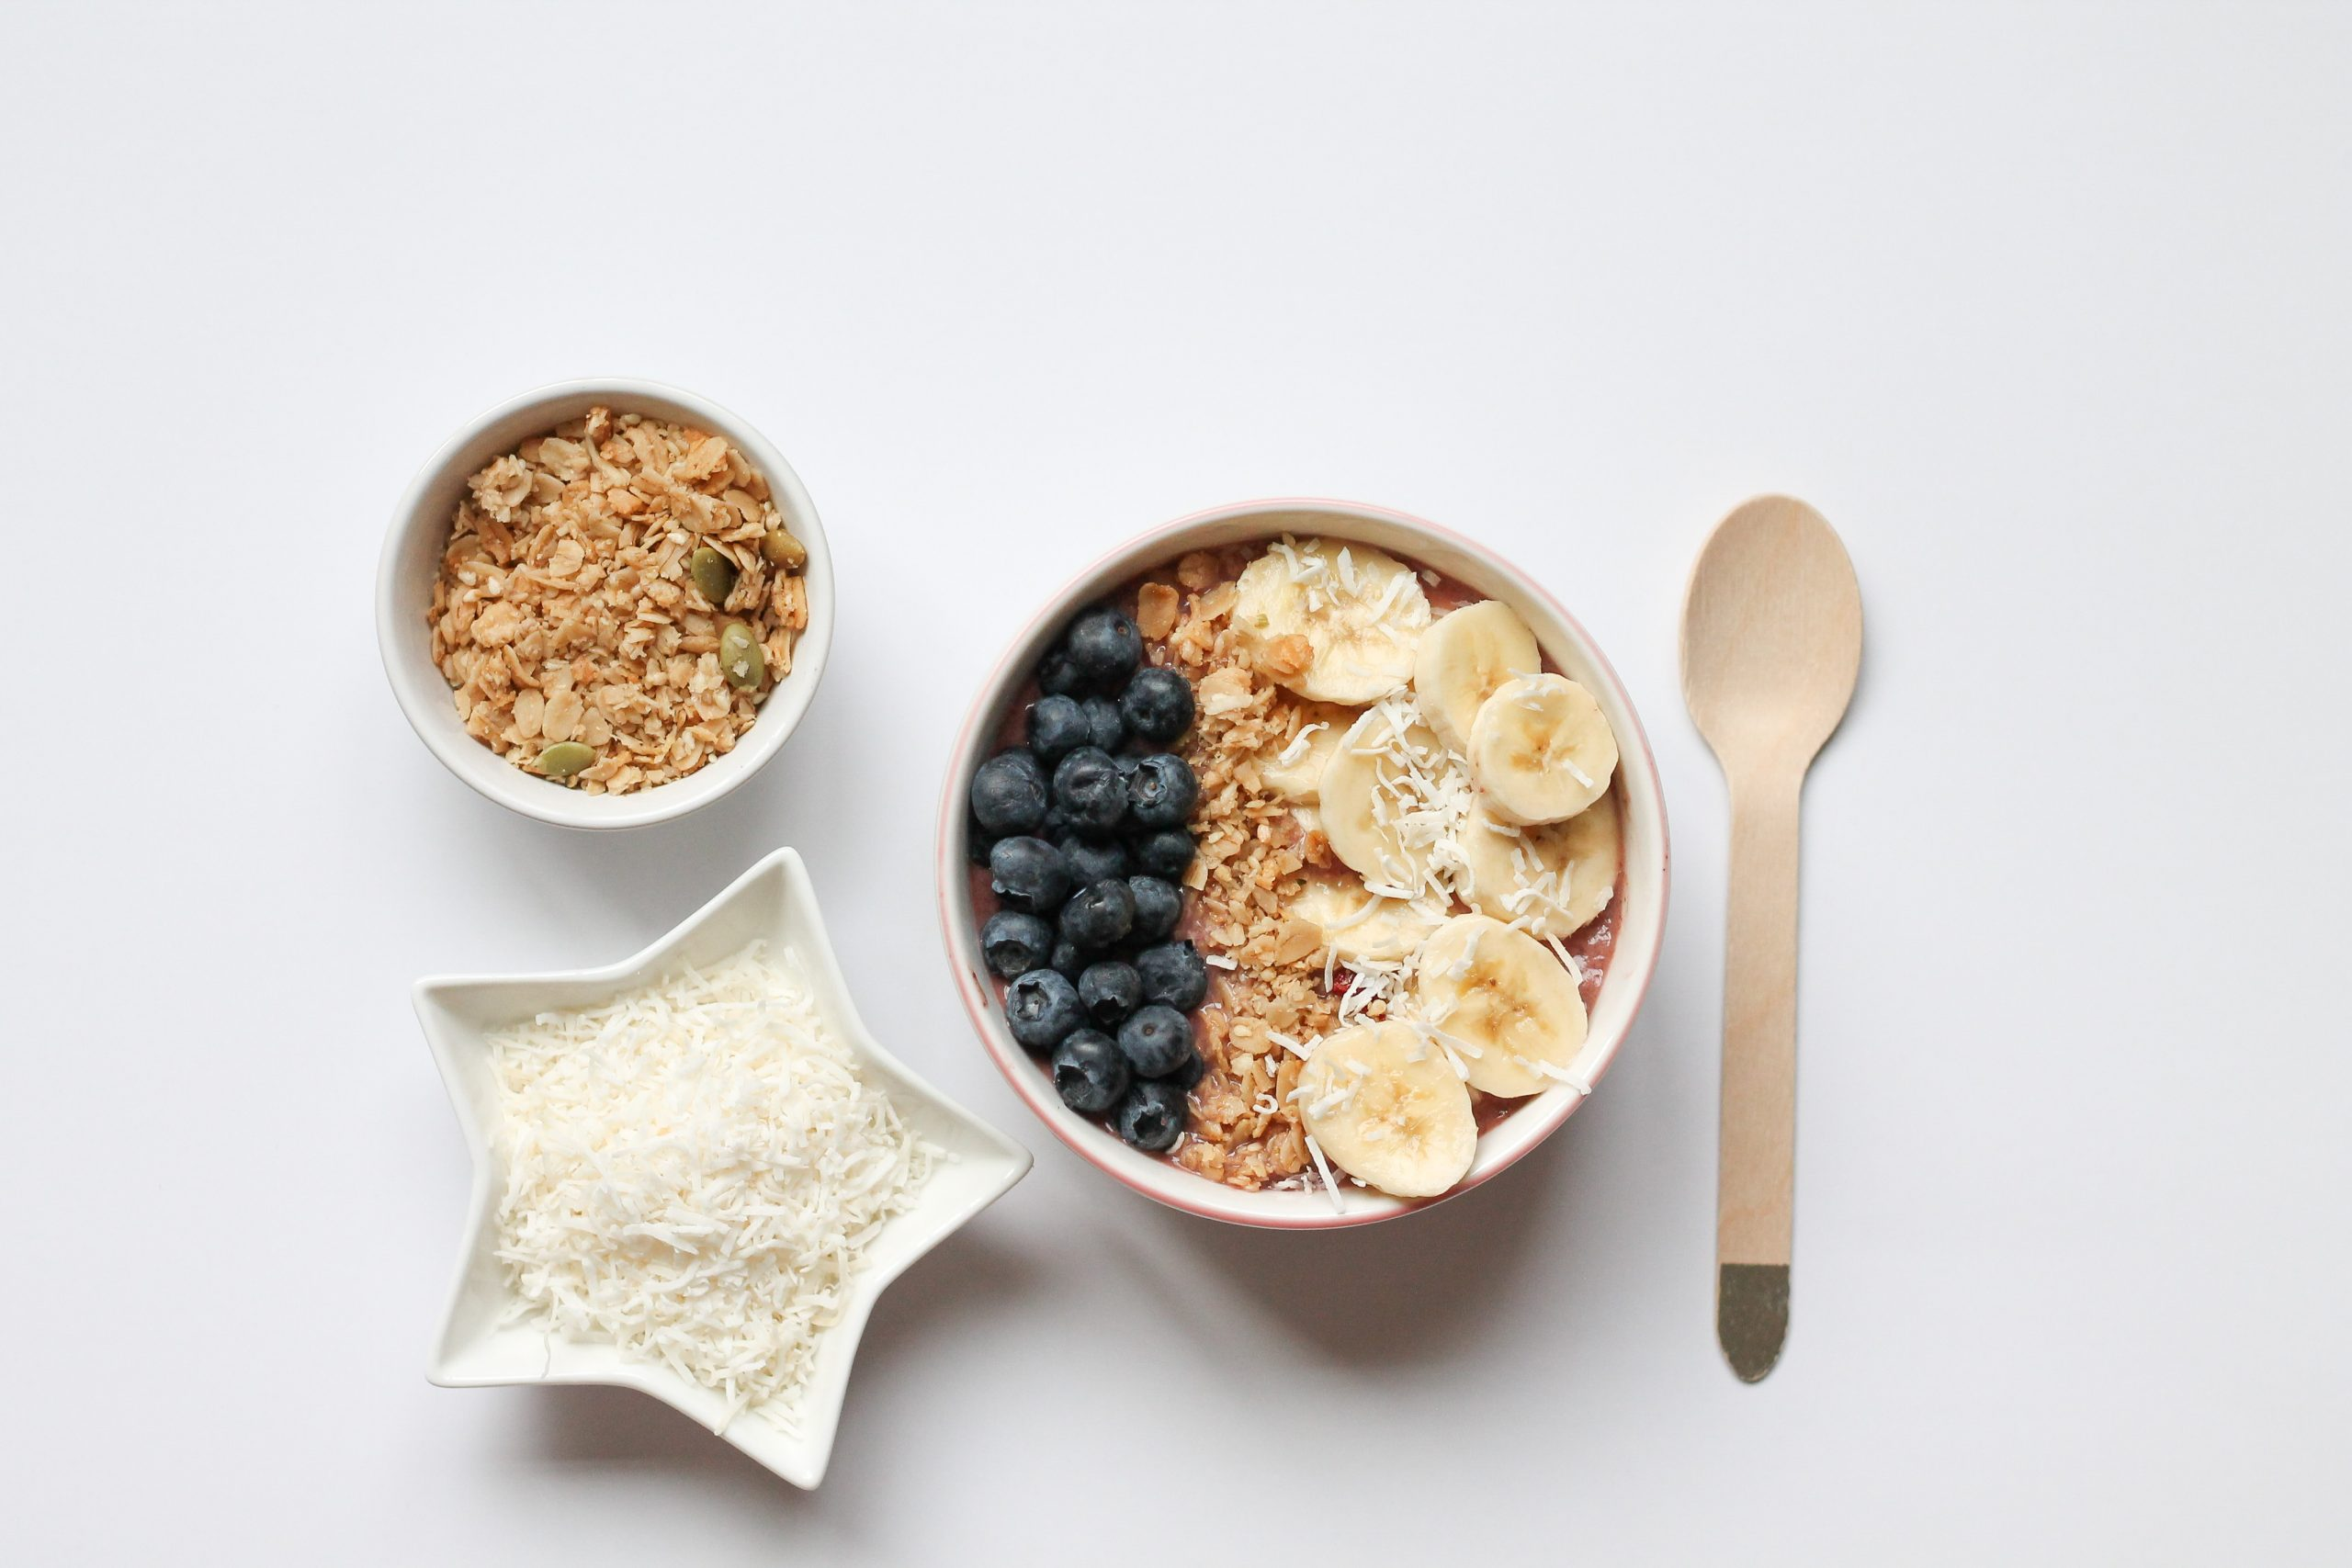 Breville Bluicing Smoothie Bowls